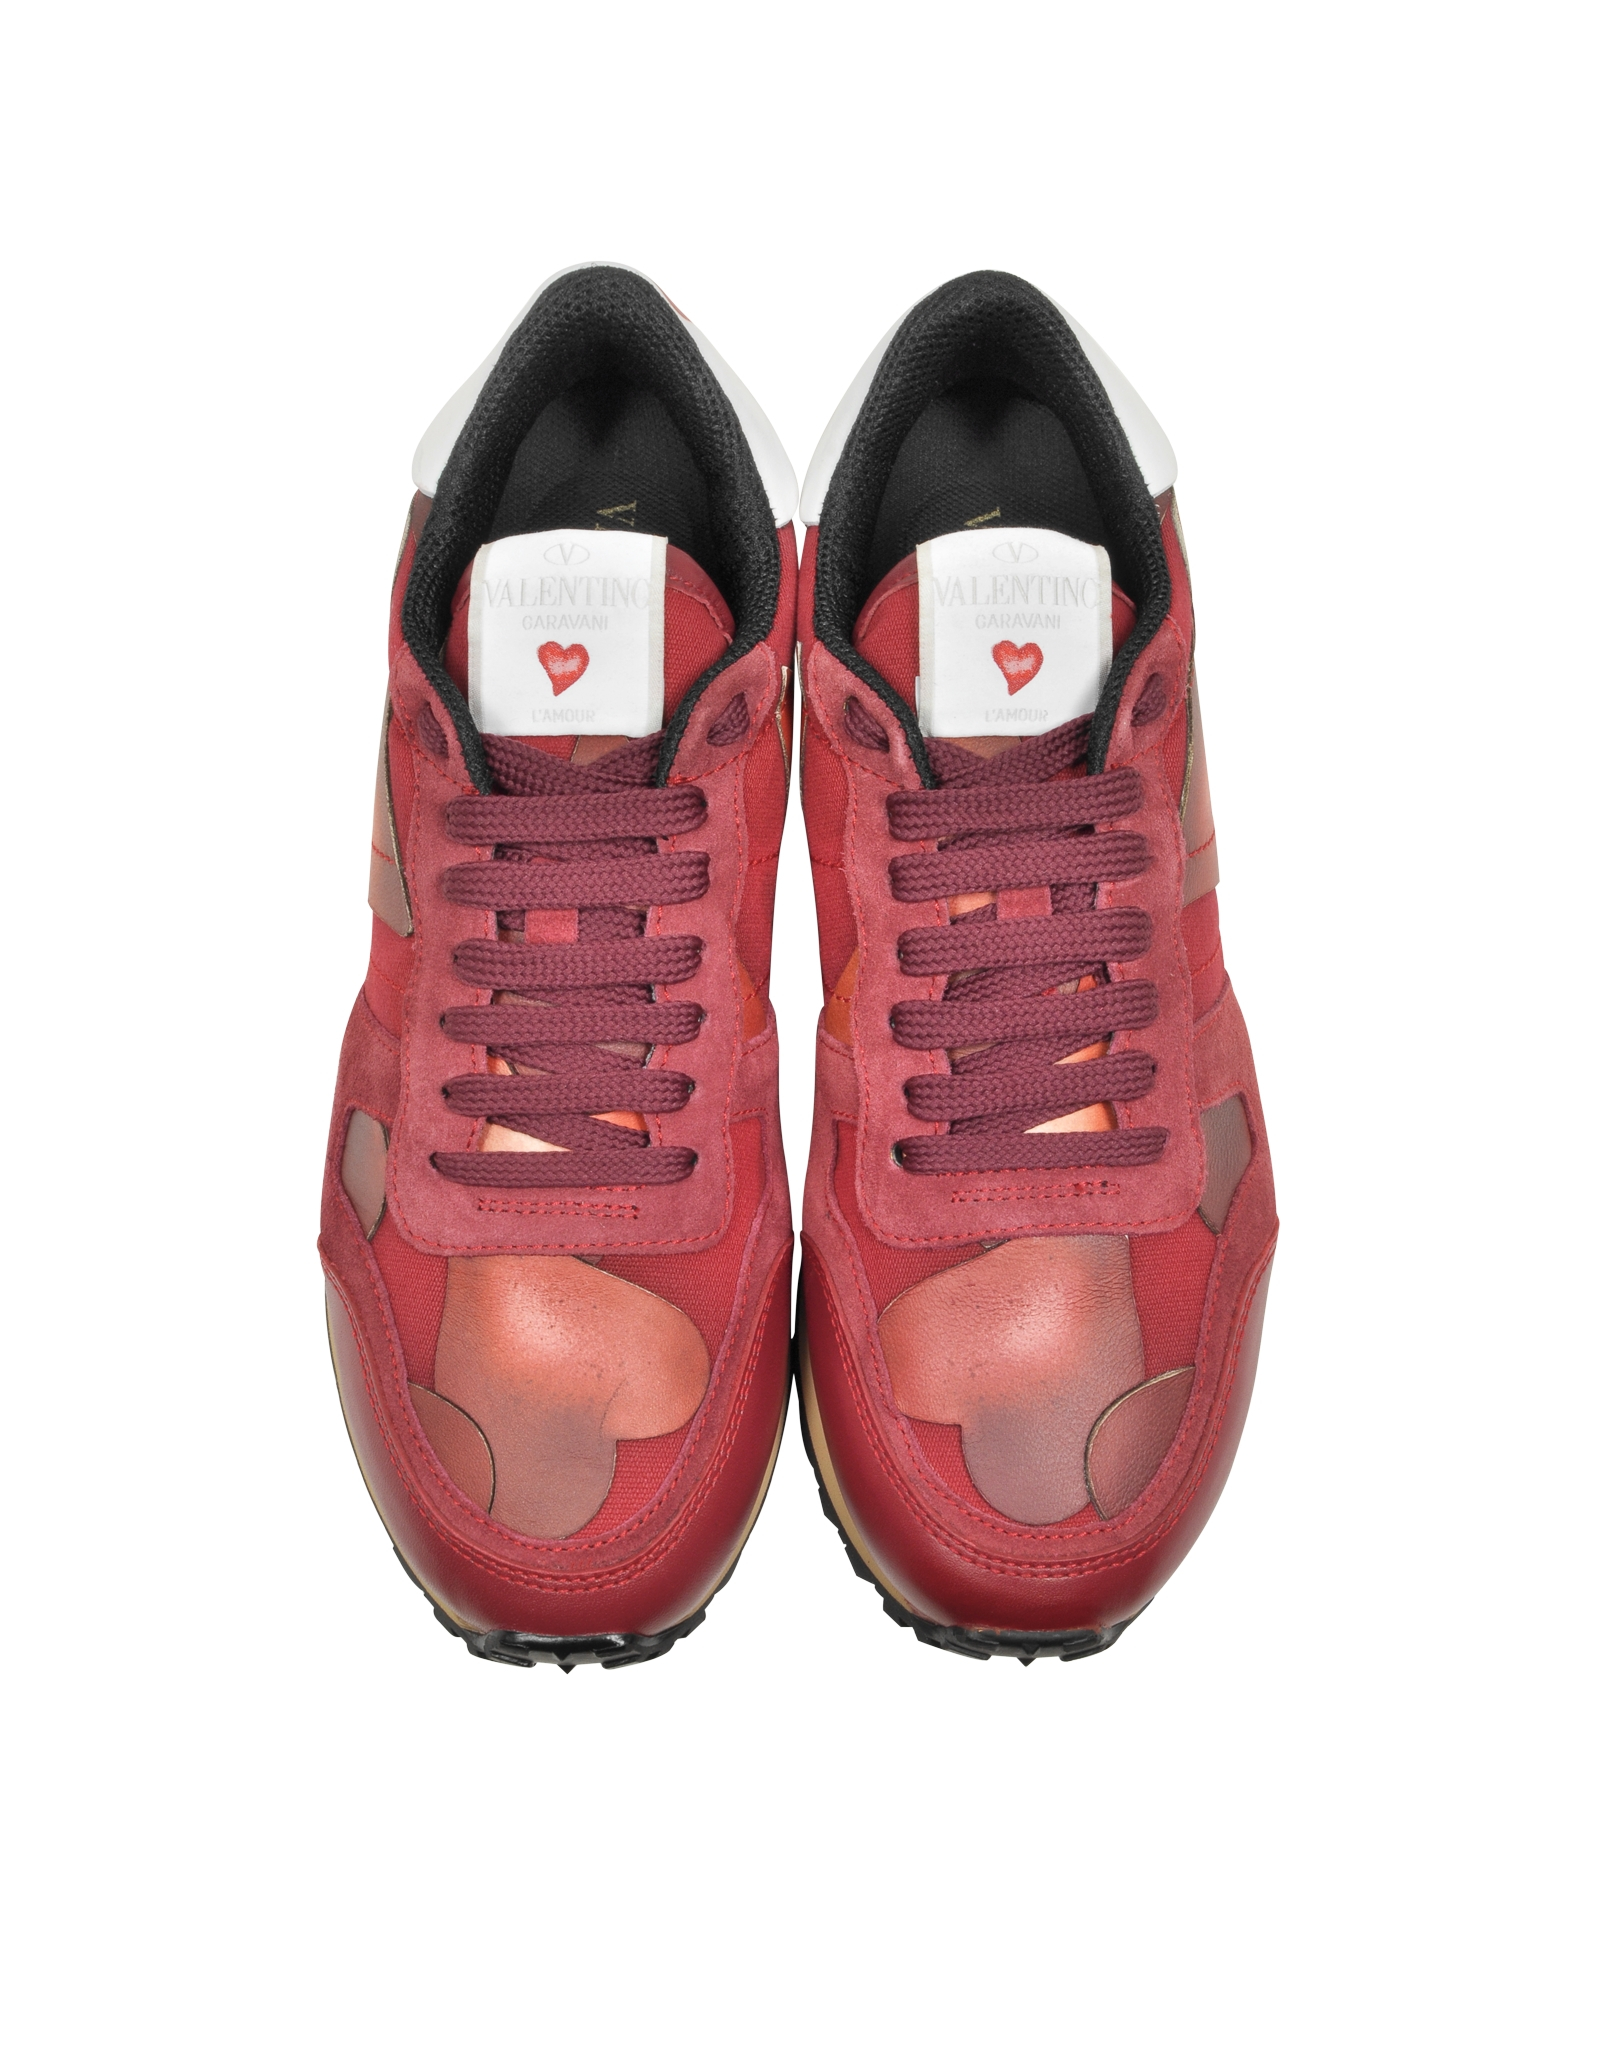 3bcc08fcbd84d Lyst - Valentino L amour Red Camuamour Print Sneaker in Red